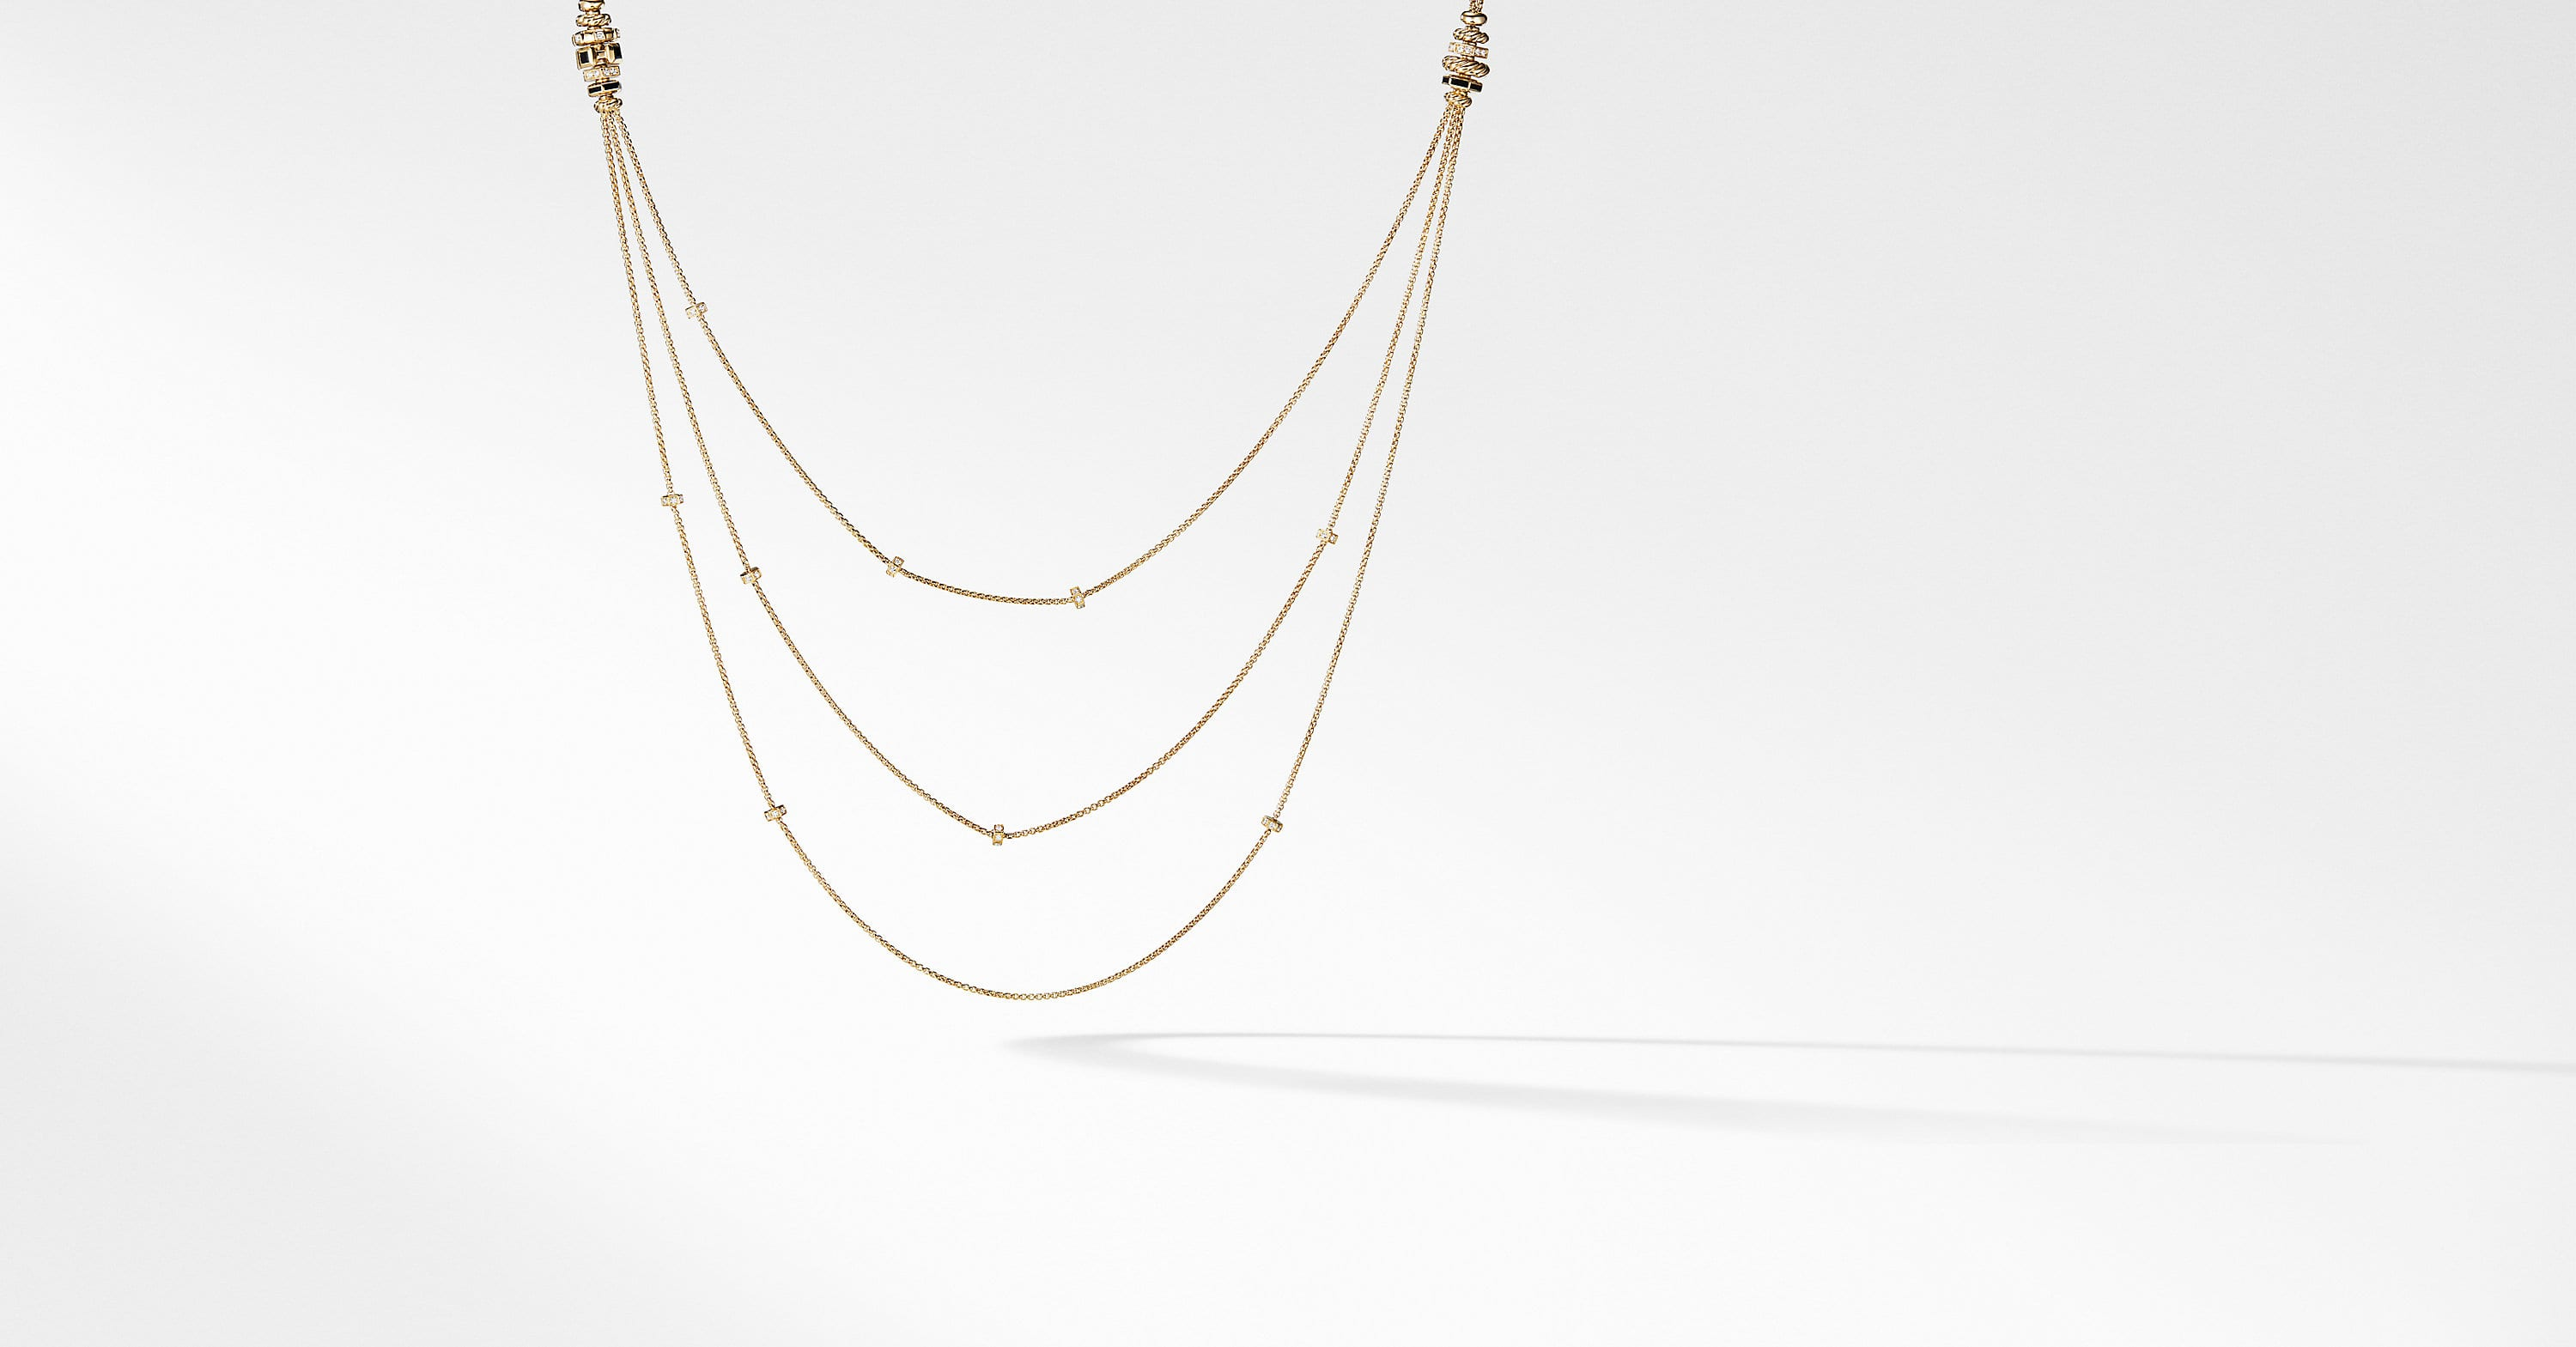 Stax Chain Necklace with Diamonds in 18K Gold